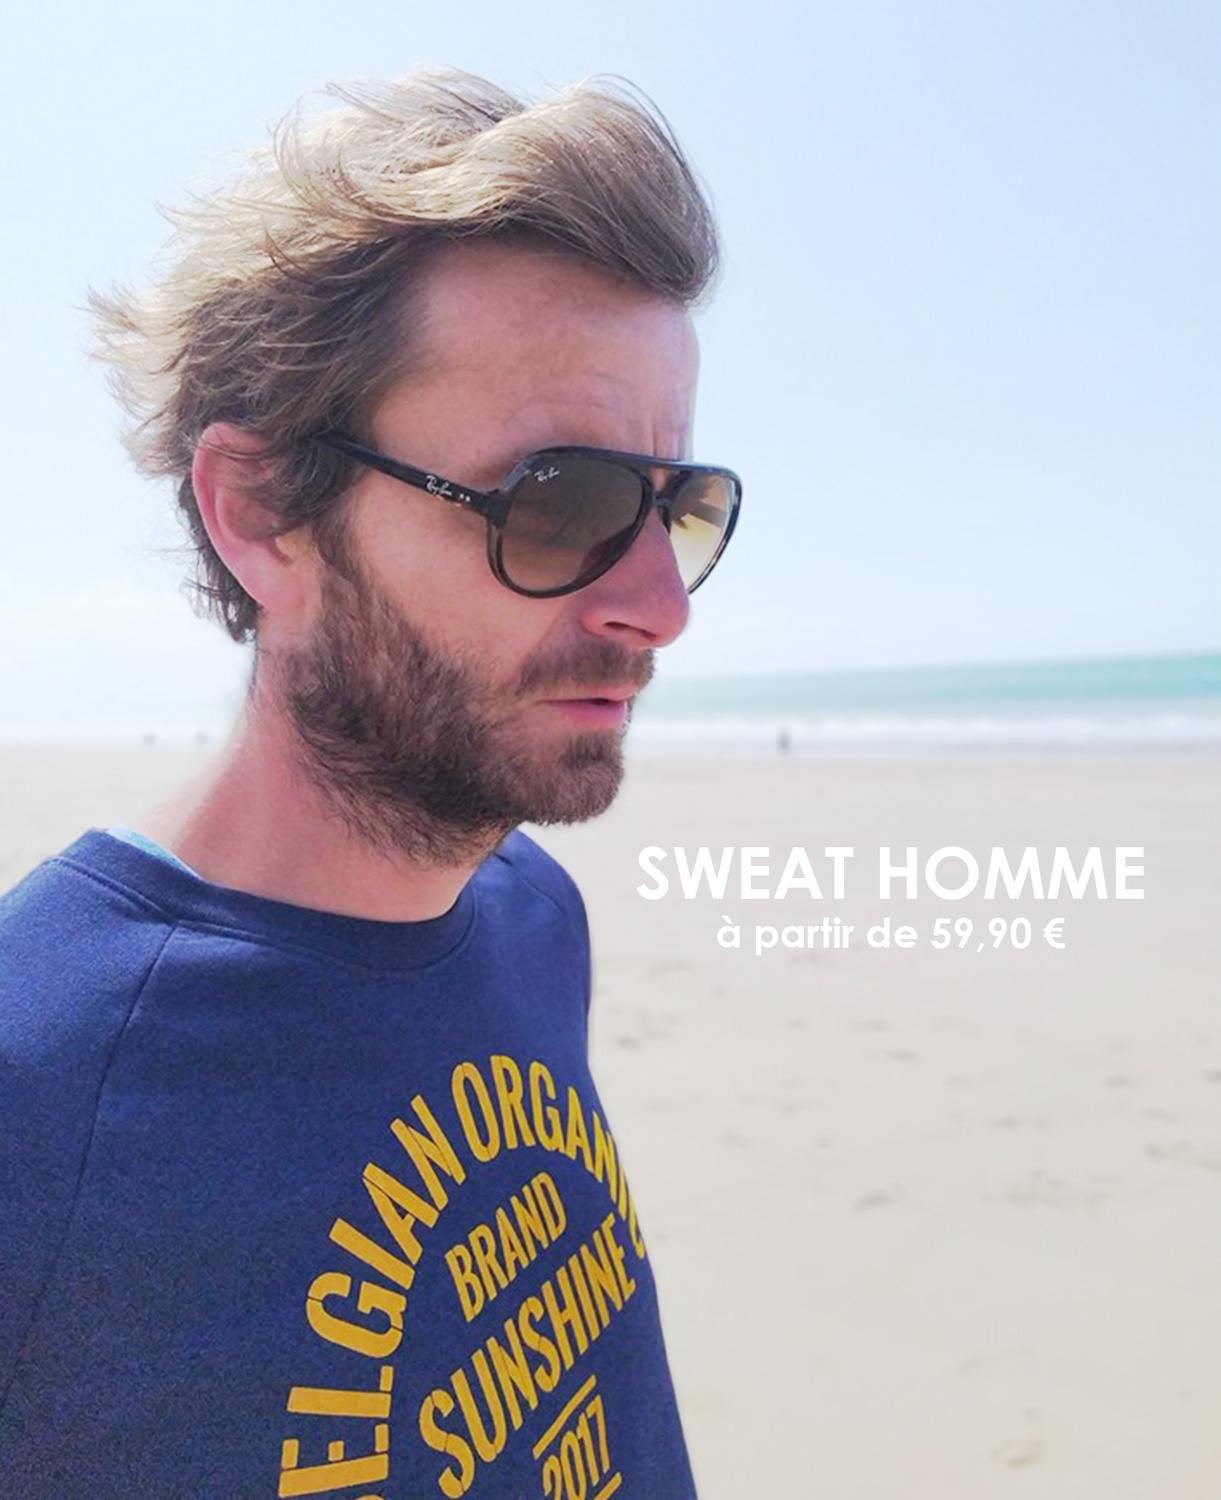 Sweat homme SunShine